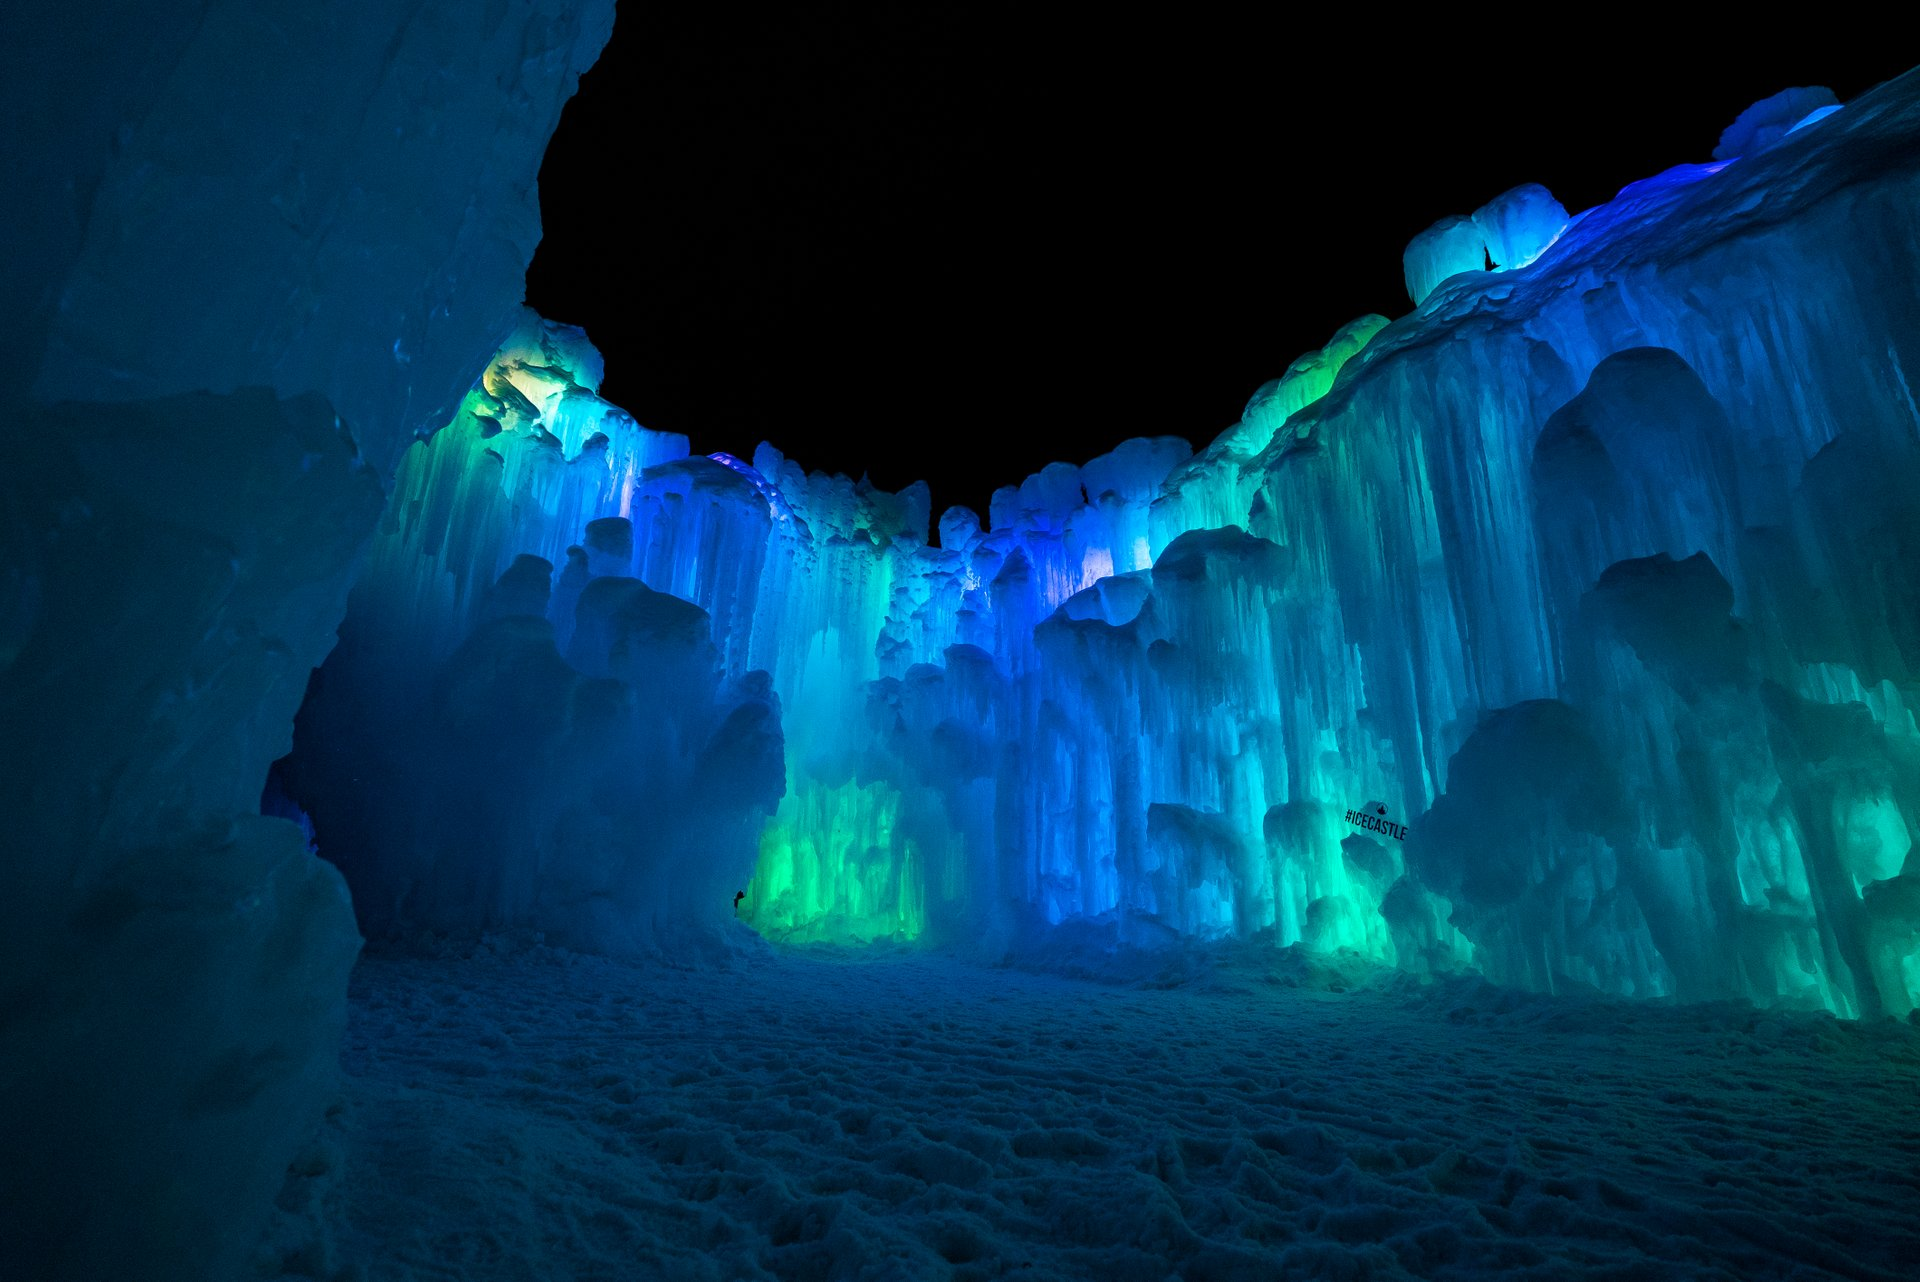 Best time for Ice Castles in Utah 2020